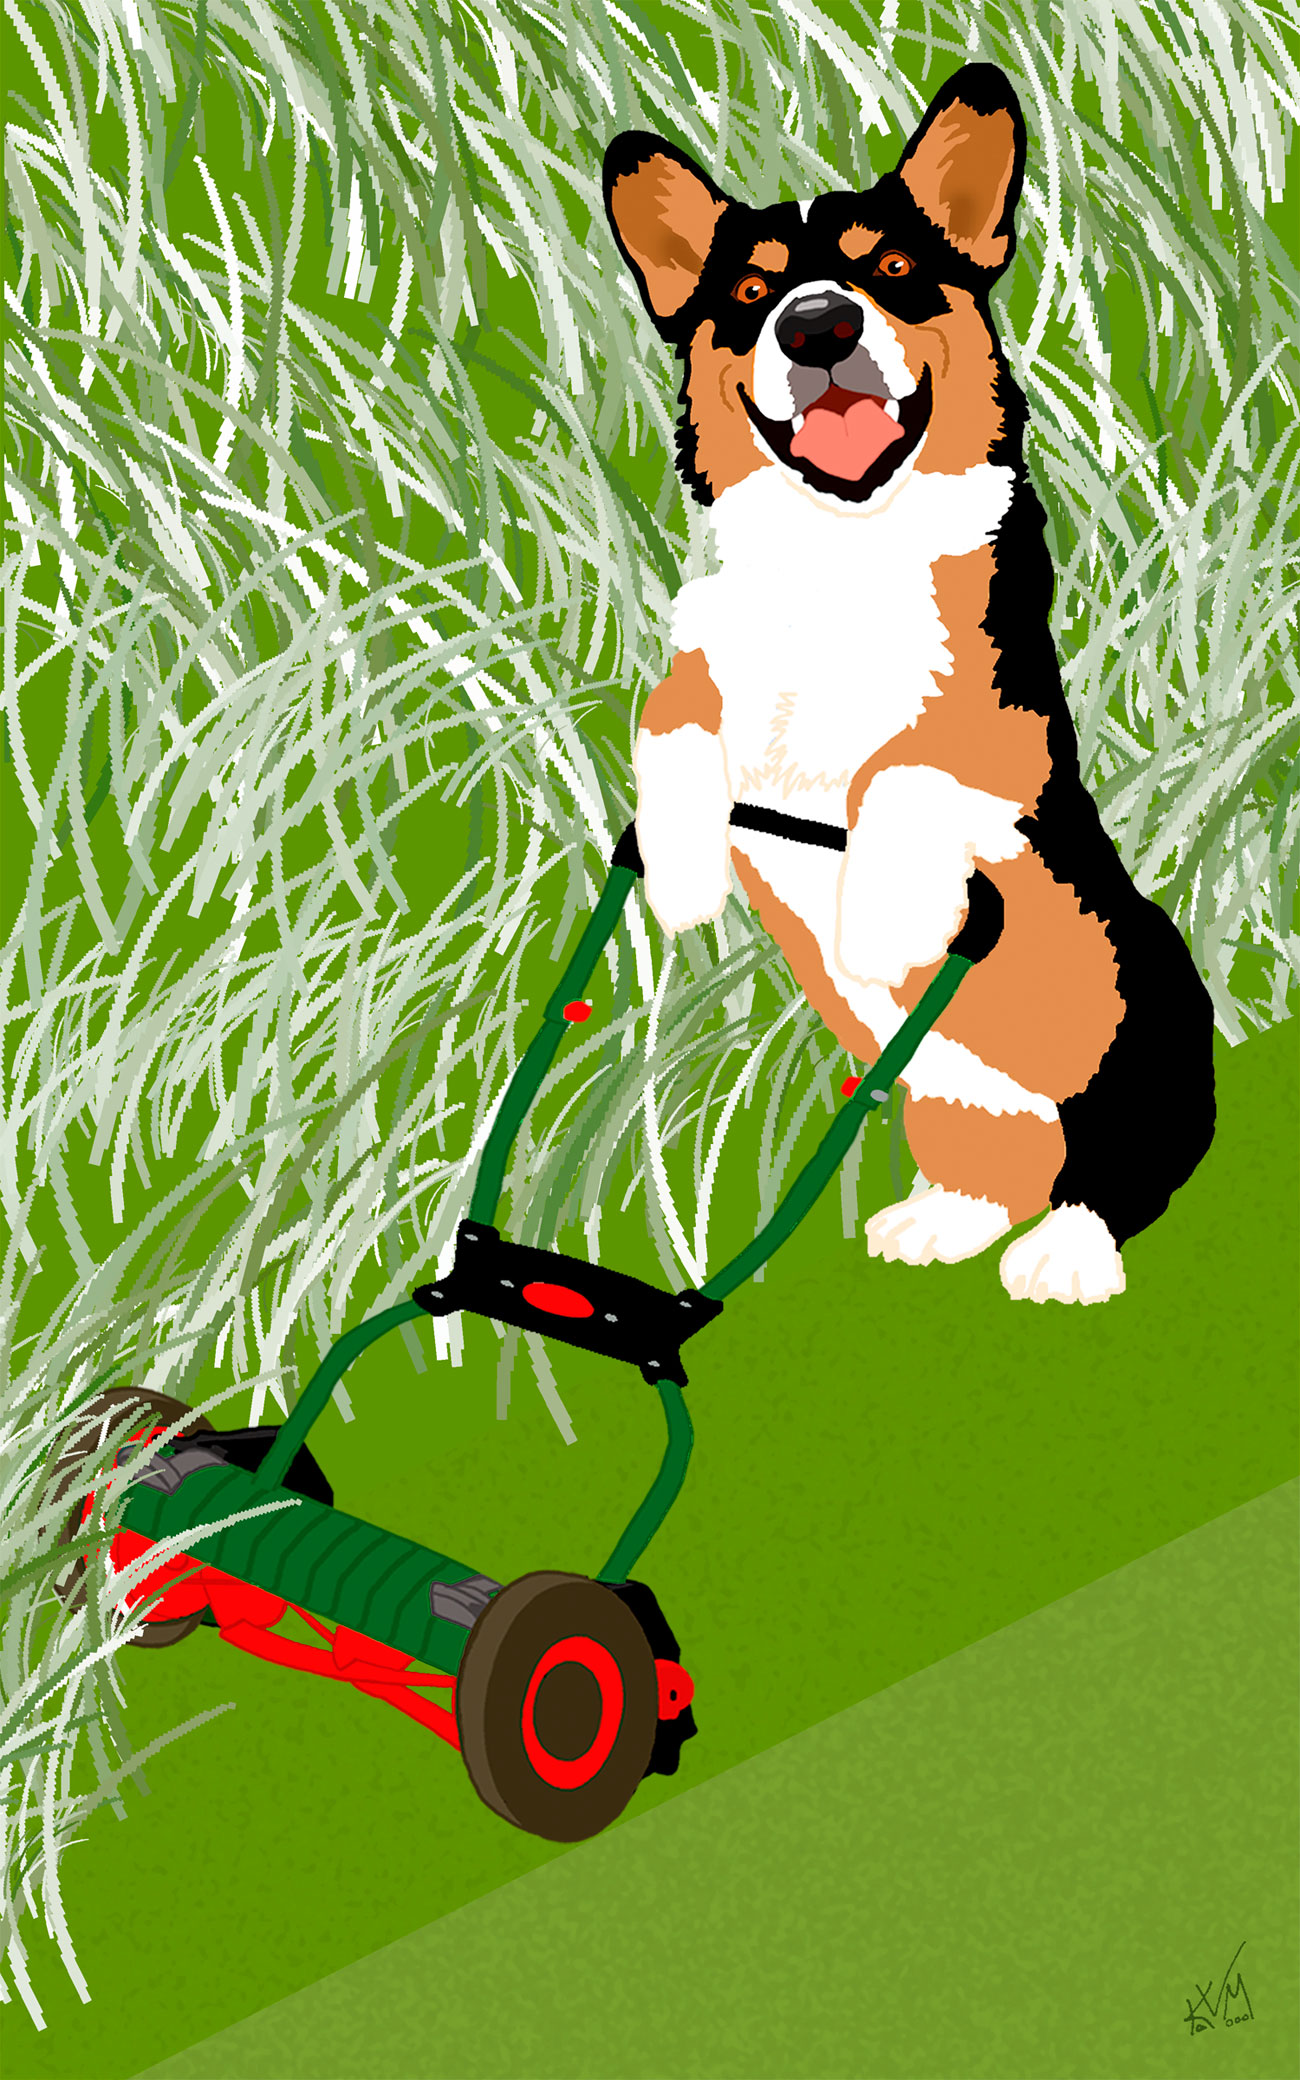 Mowing (237)